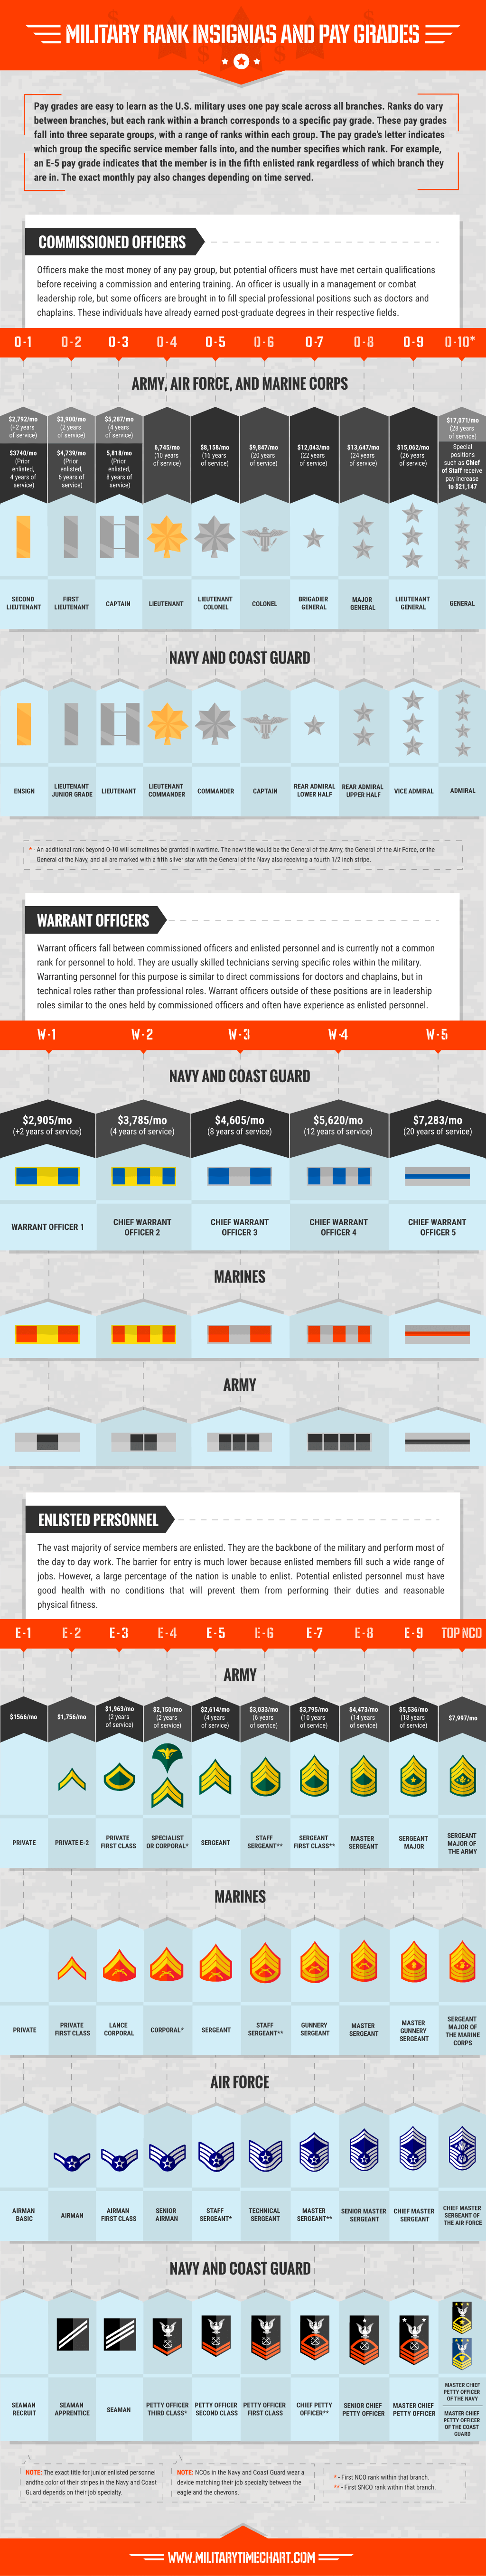 military-ranks-and-pay-grades